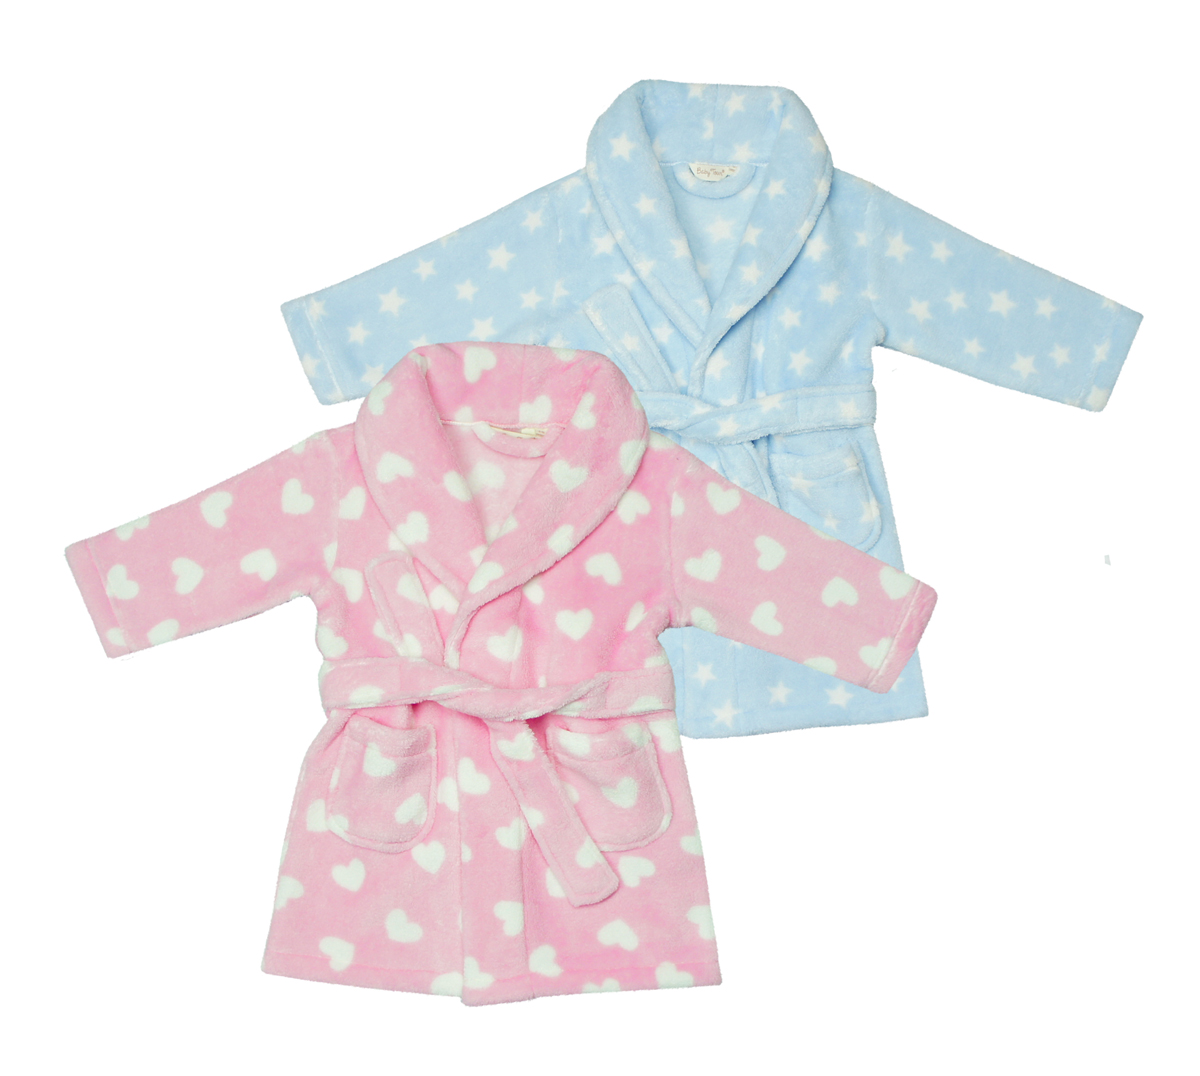 New Pink Hearts Snuggle Soft Thick Fleece Dressing Gown Bath Robe Hooded Warm